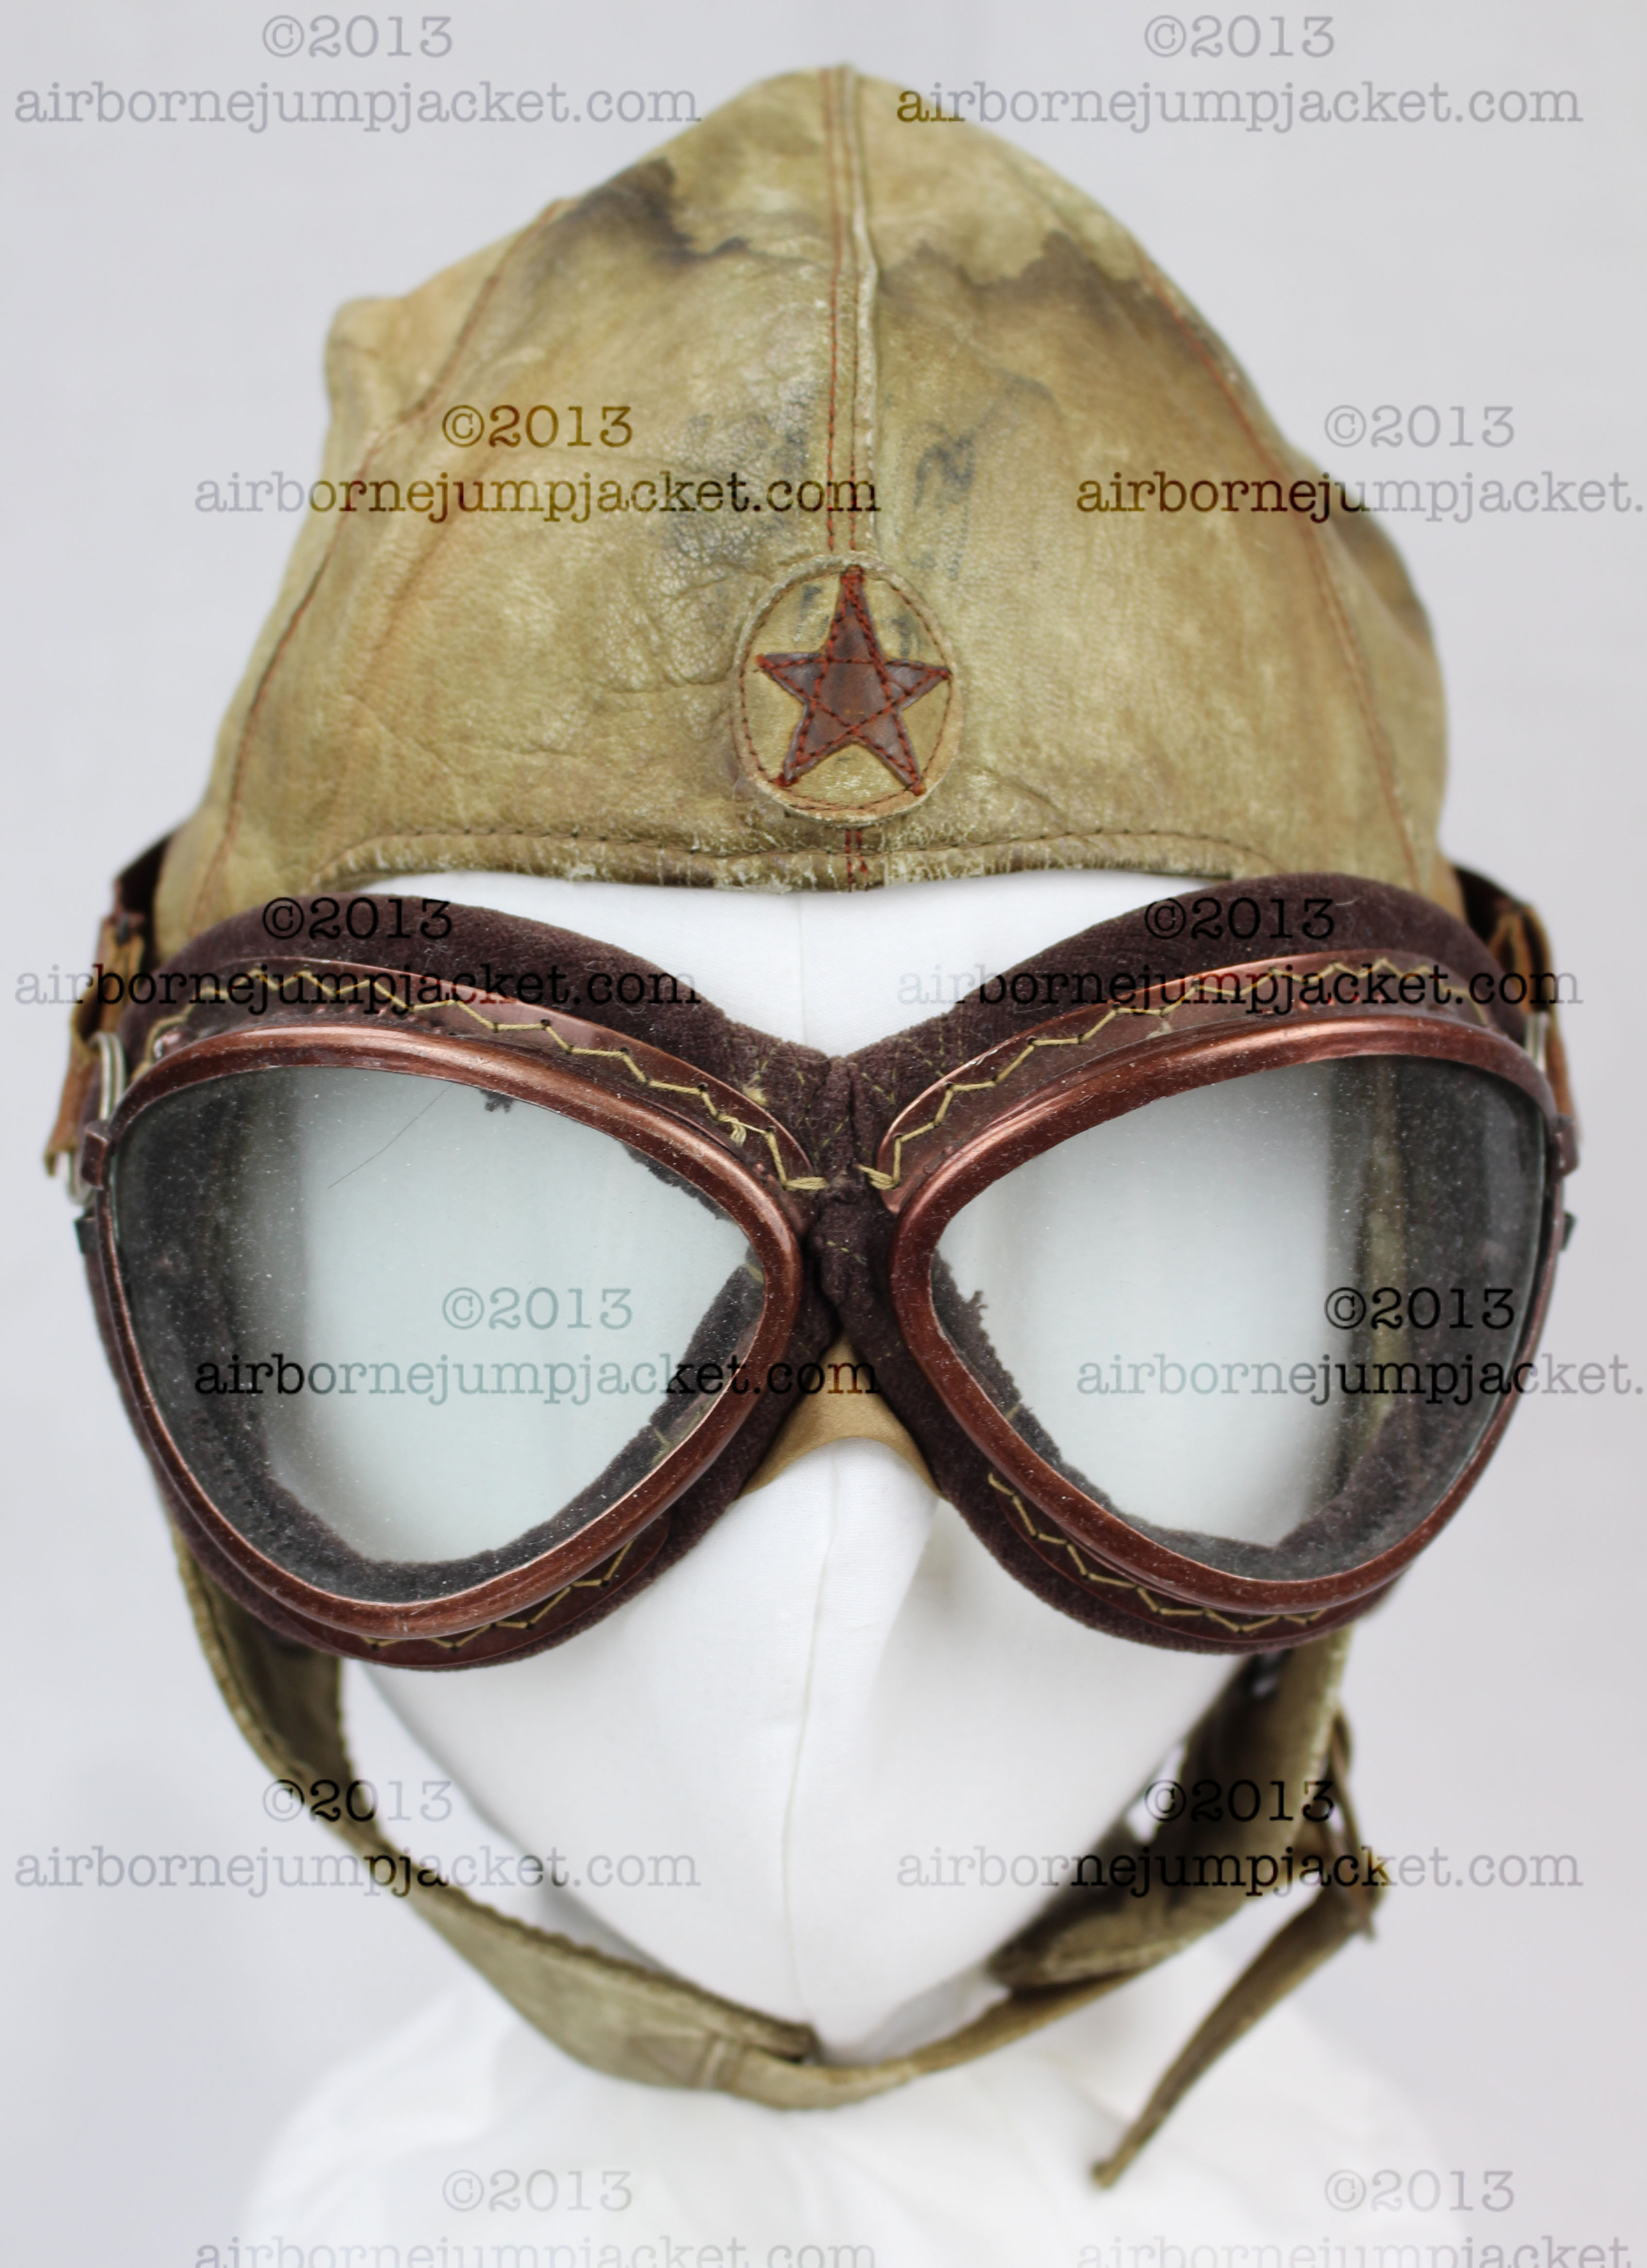 Wwii Japanese Helmets And Uniforms Airbornejumpjacket